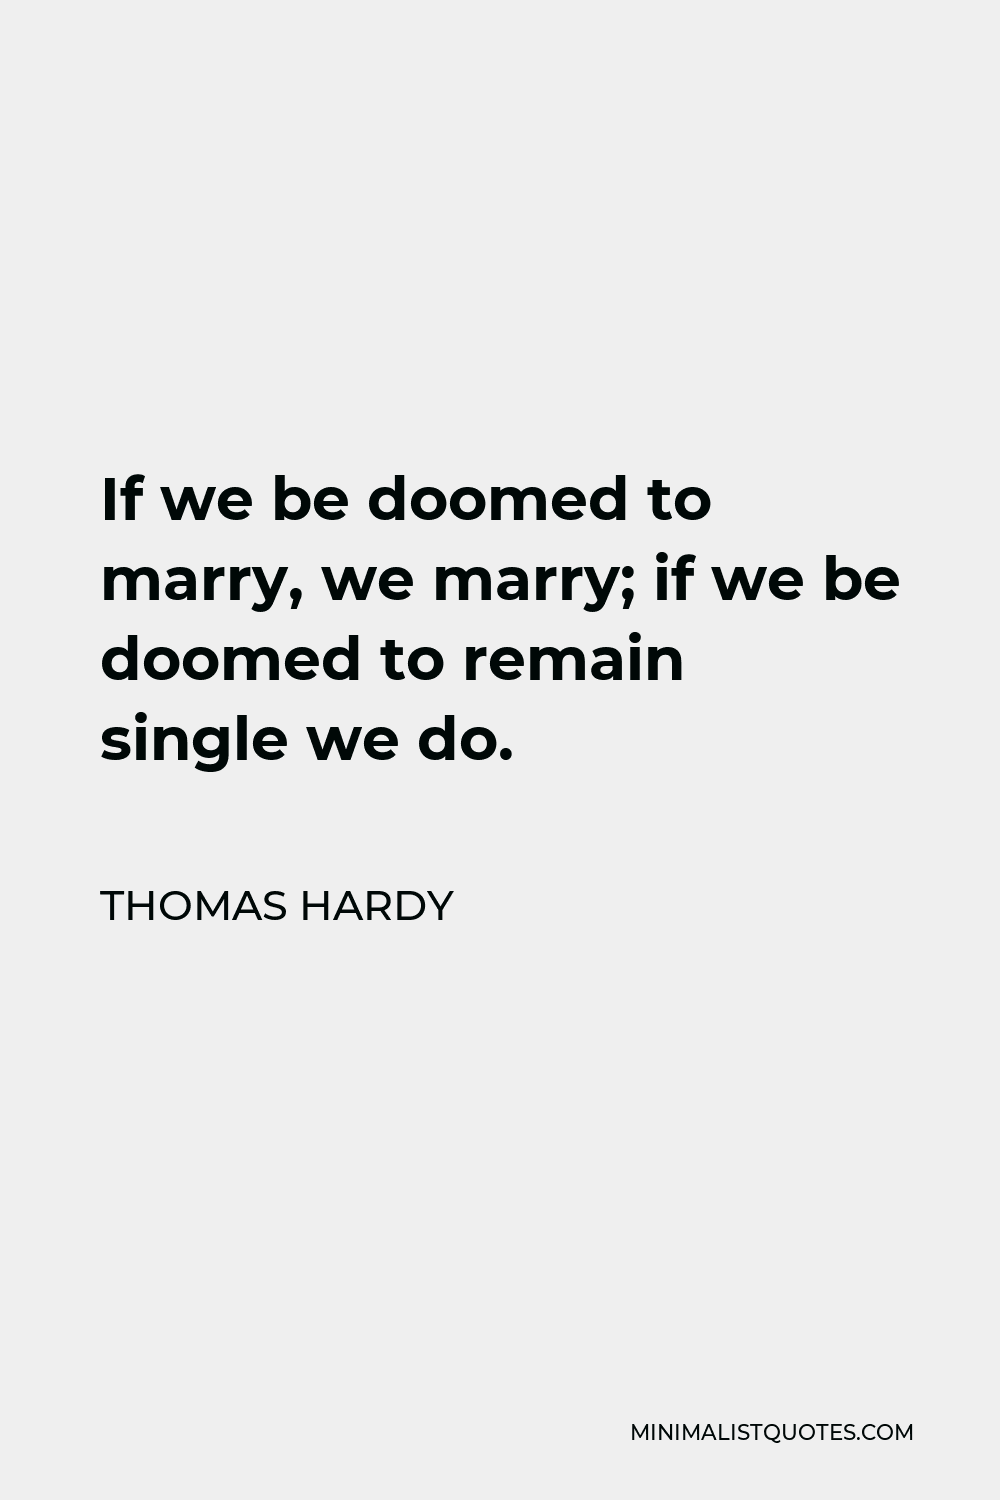 Thomas Hardy Quote - If we be doomed to marry, we marry; if we be doomed to remain single we do.